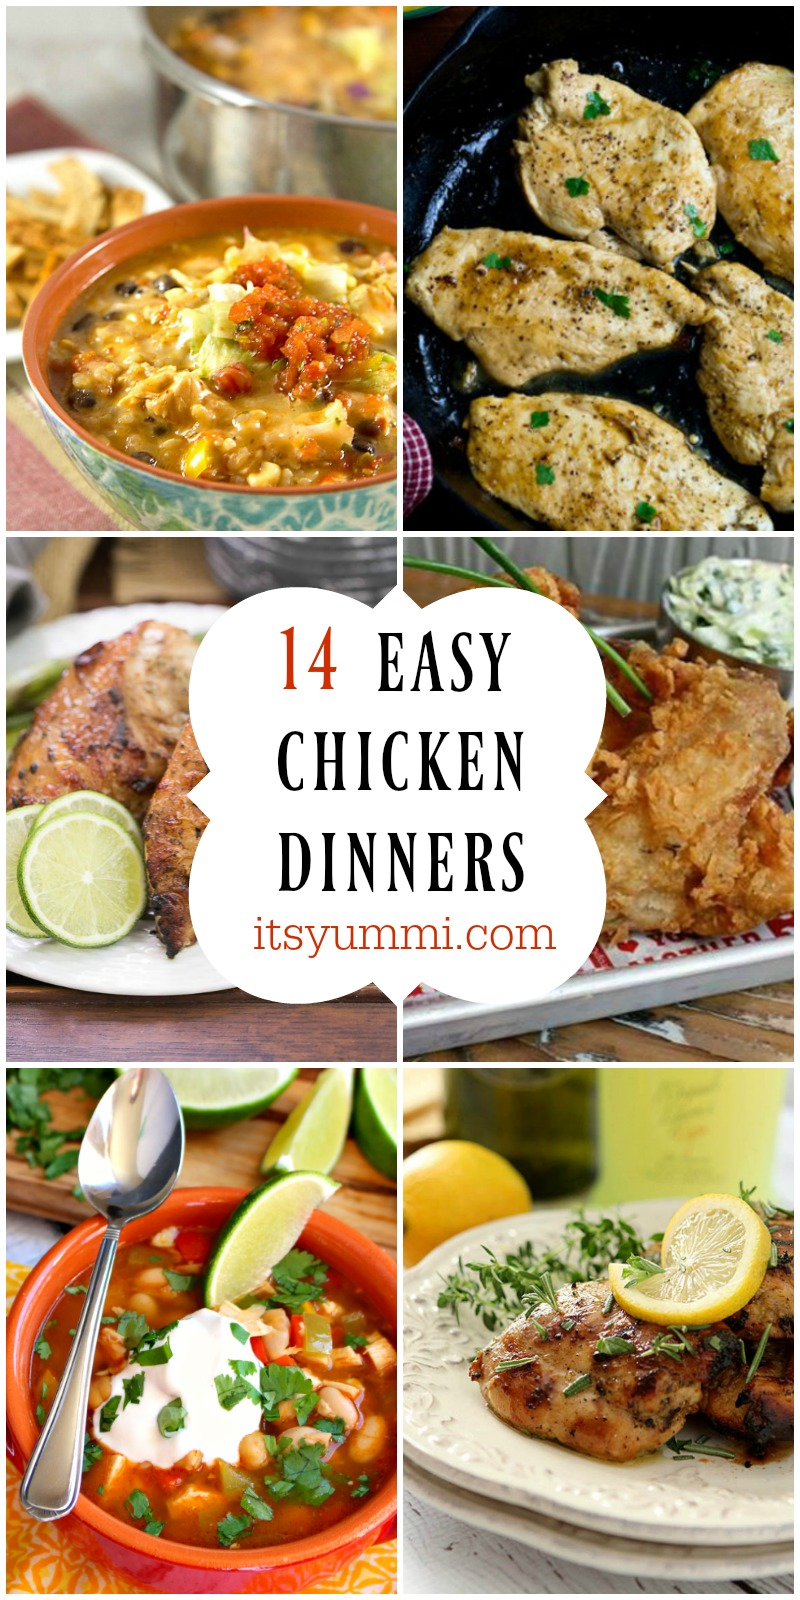 14 Easy Chicken Dinners to Celebrate National Chicken Month